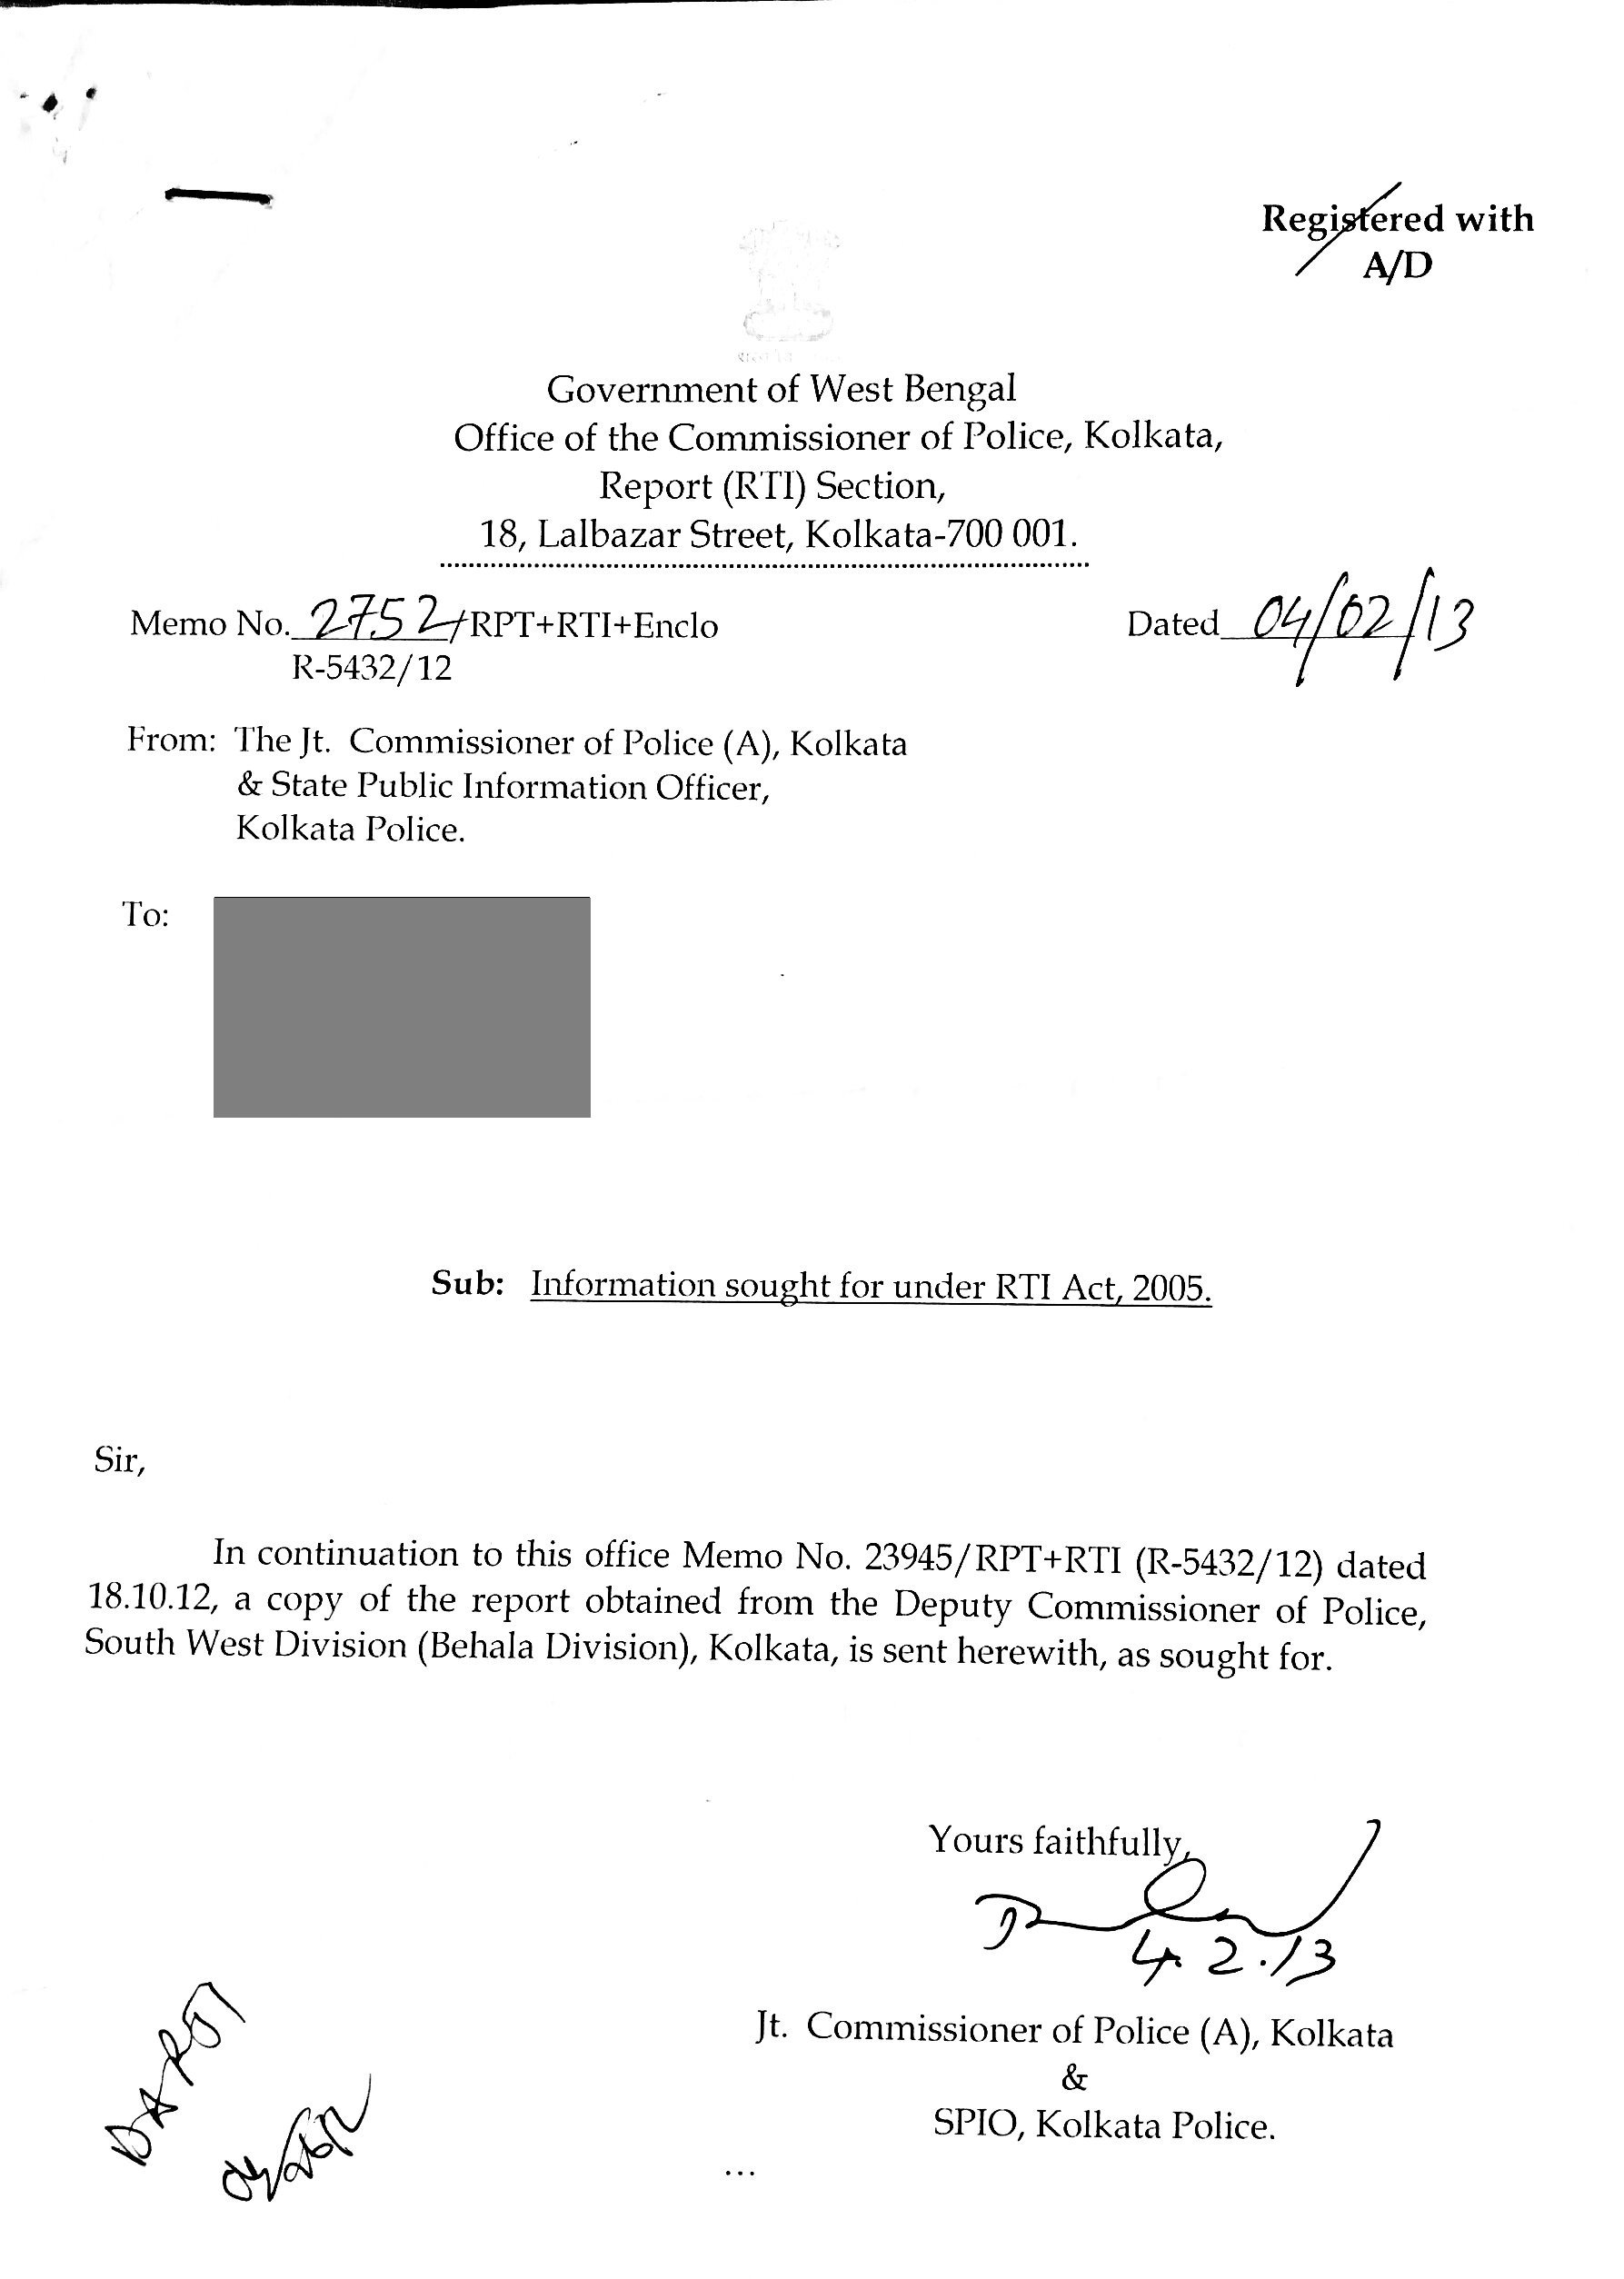 Rti reveals important kolkata police circular on dowry cases the reply cover letter reply pg1 police circular spiritdancerdesigns Choice Image